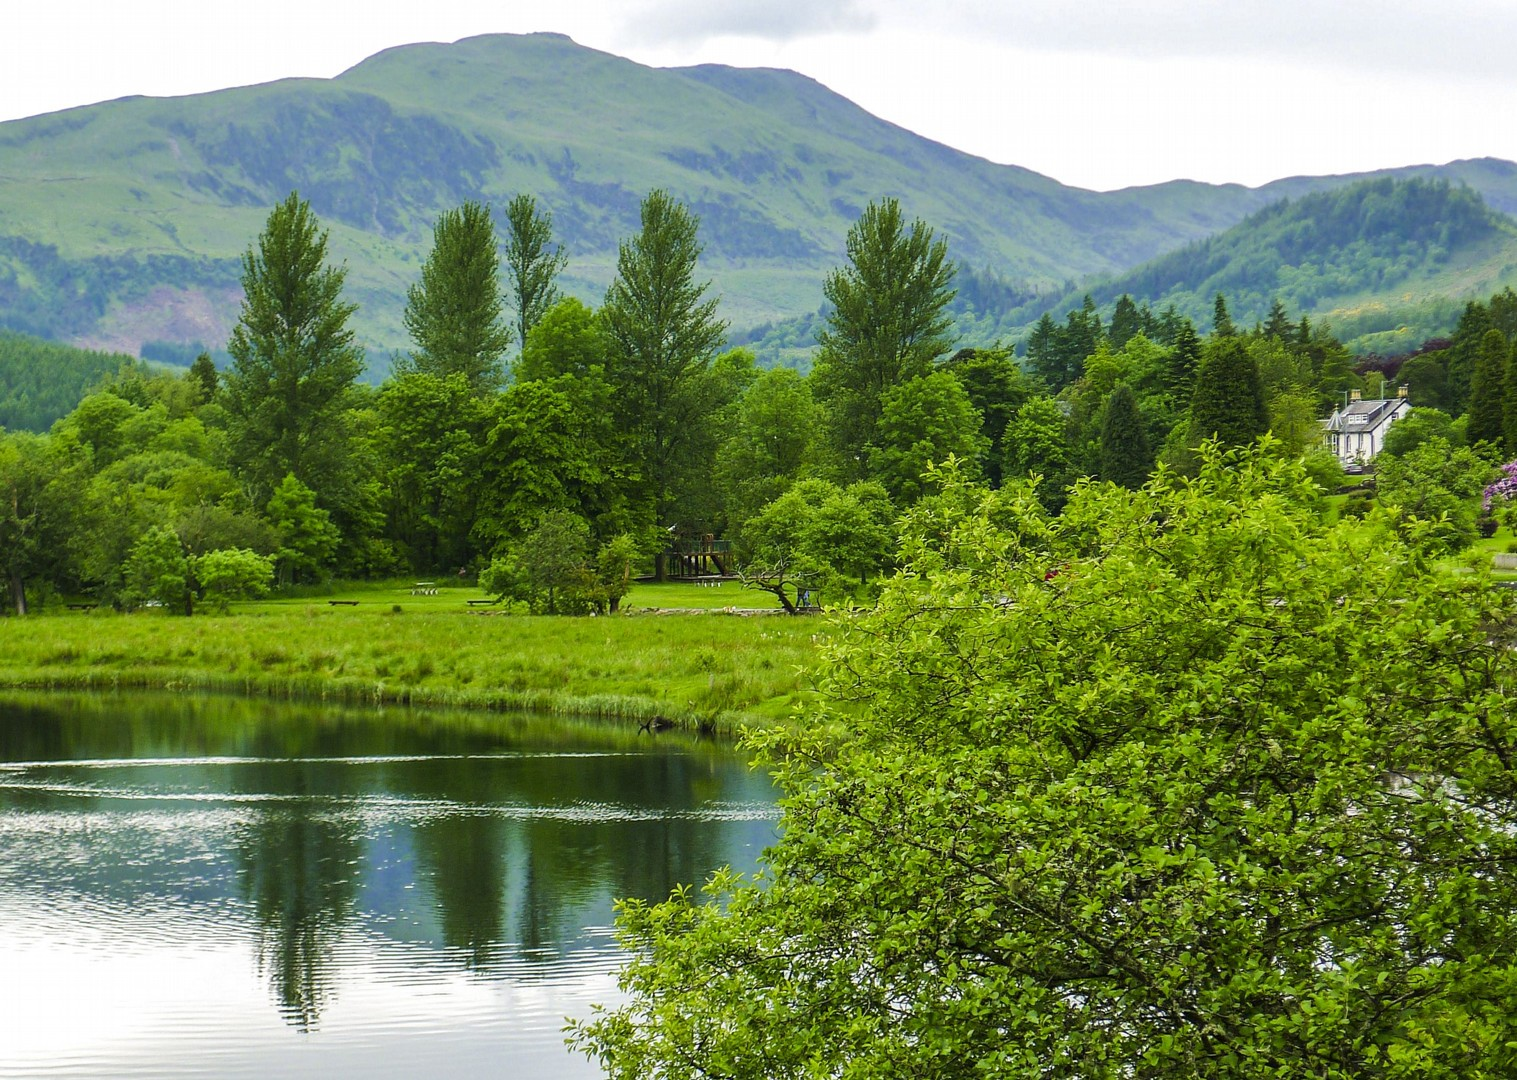 scottish-cycling-mountains-lakes-rivers-whiskey-distillery-bike-holiday.jpg - NEW! UK - Scotland - Lochs and Glens - Leisure Cycling